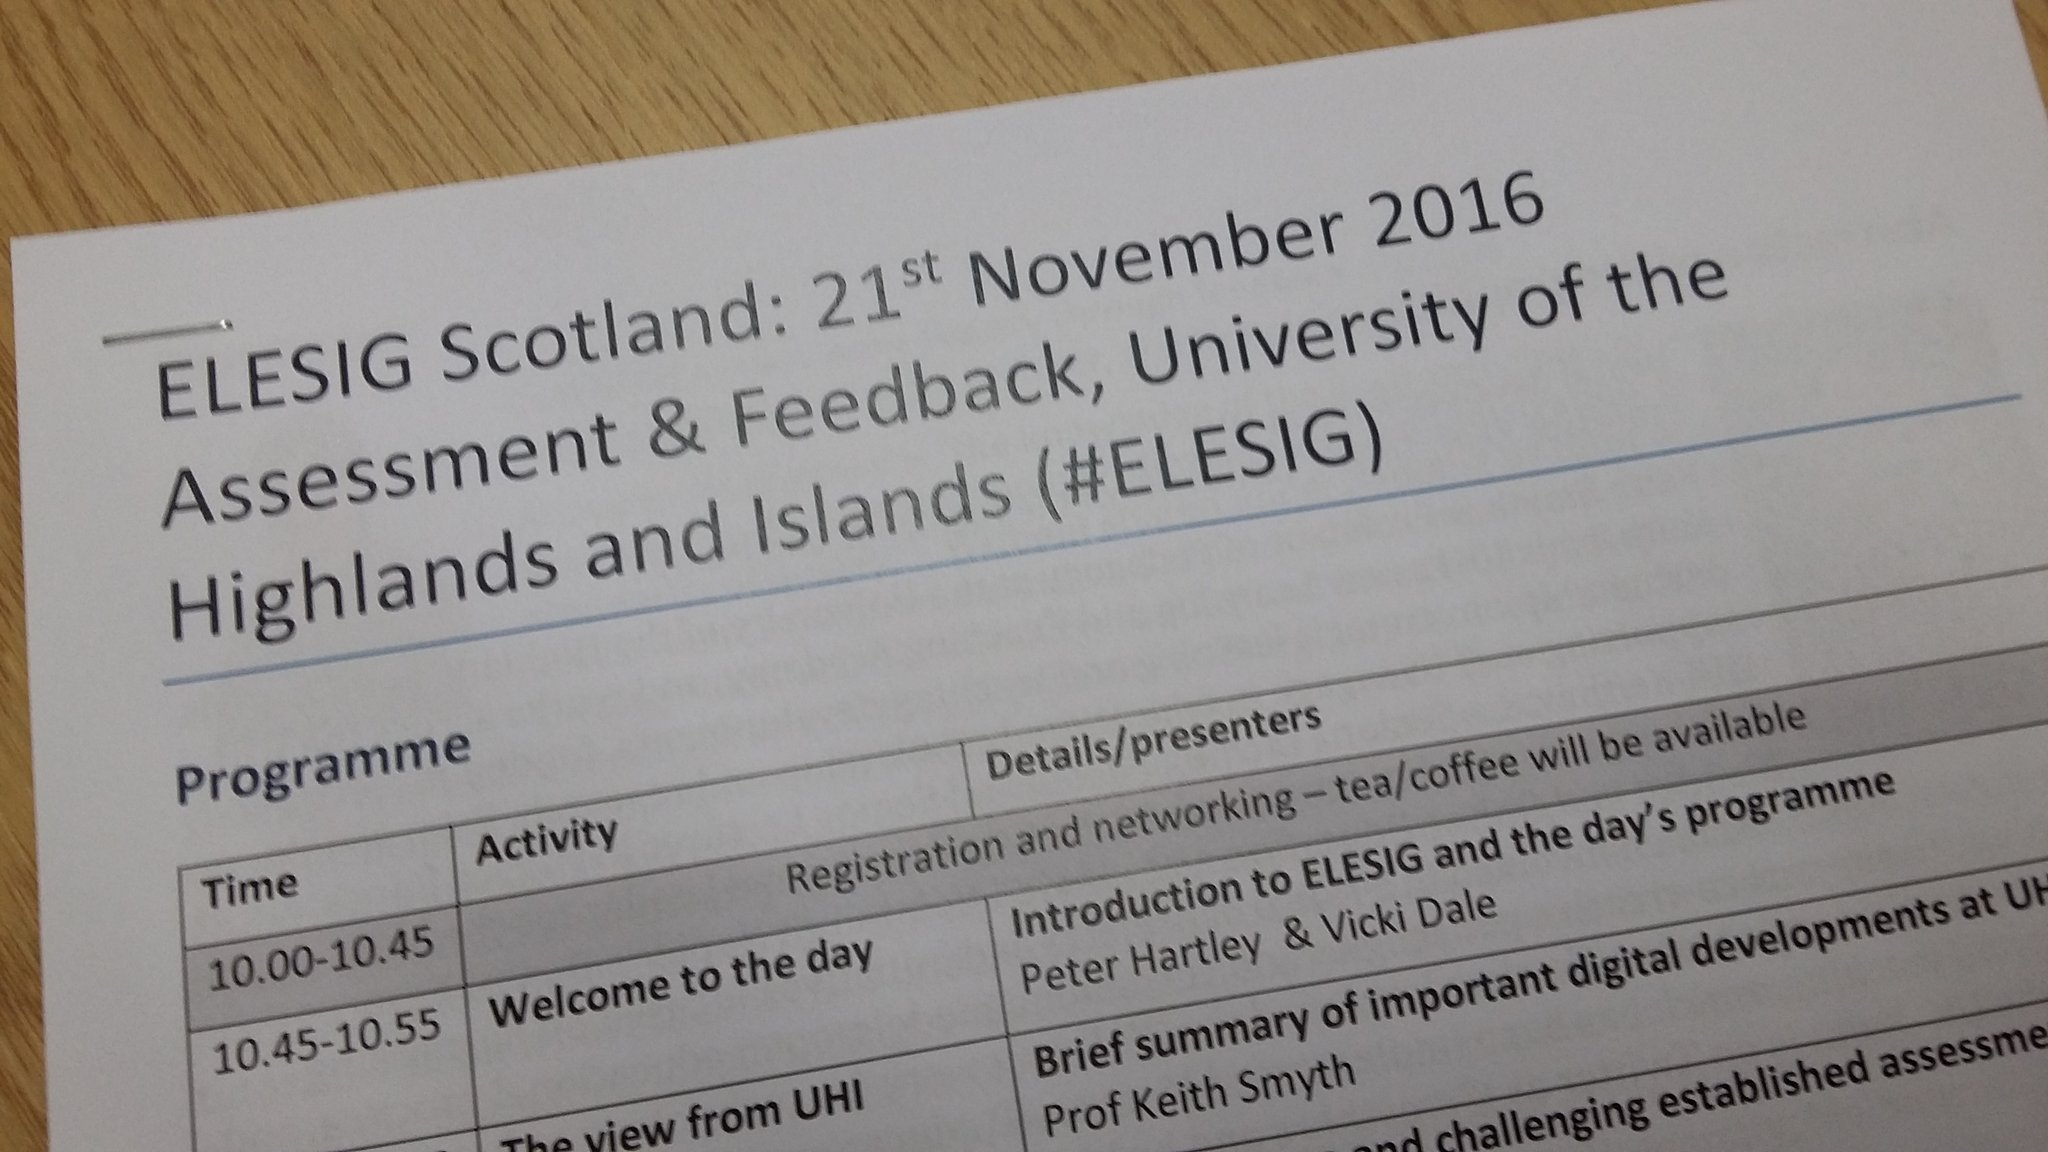 Today the LTA will be tweeting from the #ELESIG Scotland event on assessment and feedback which we're happy to be hosting here @ThinkUHI https://t.co/22f9ynLNJm